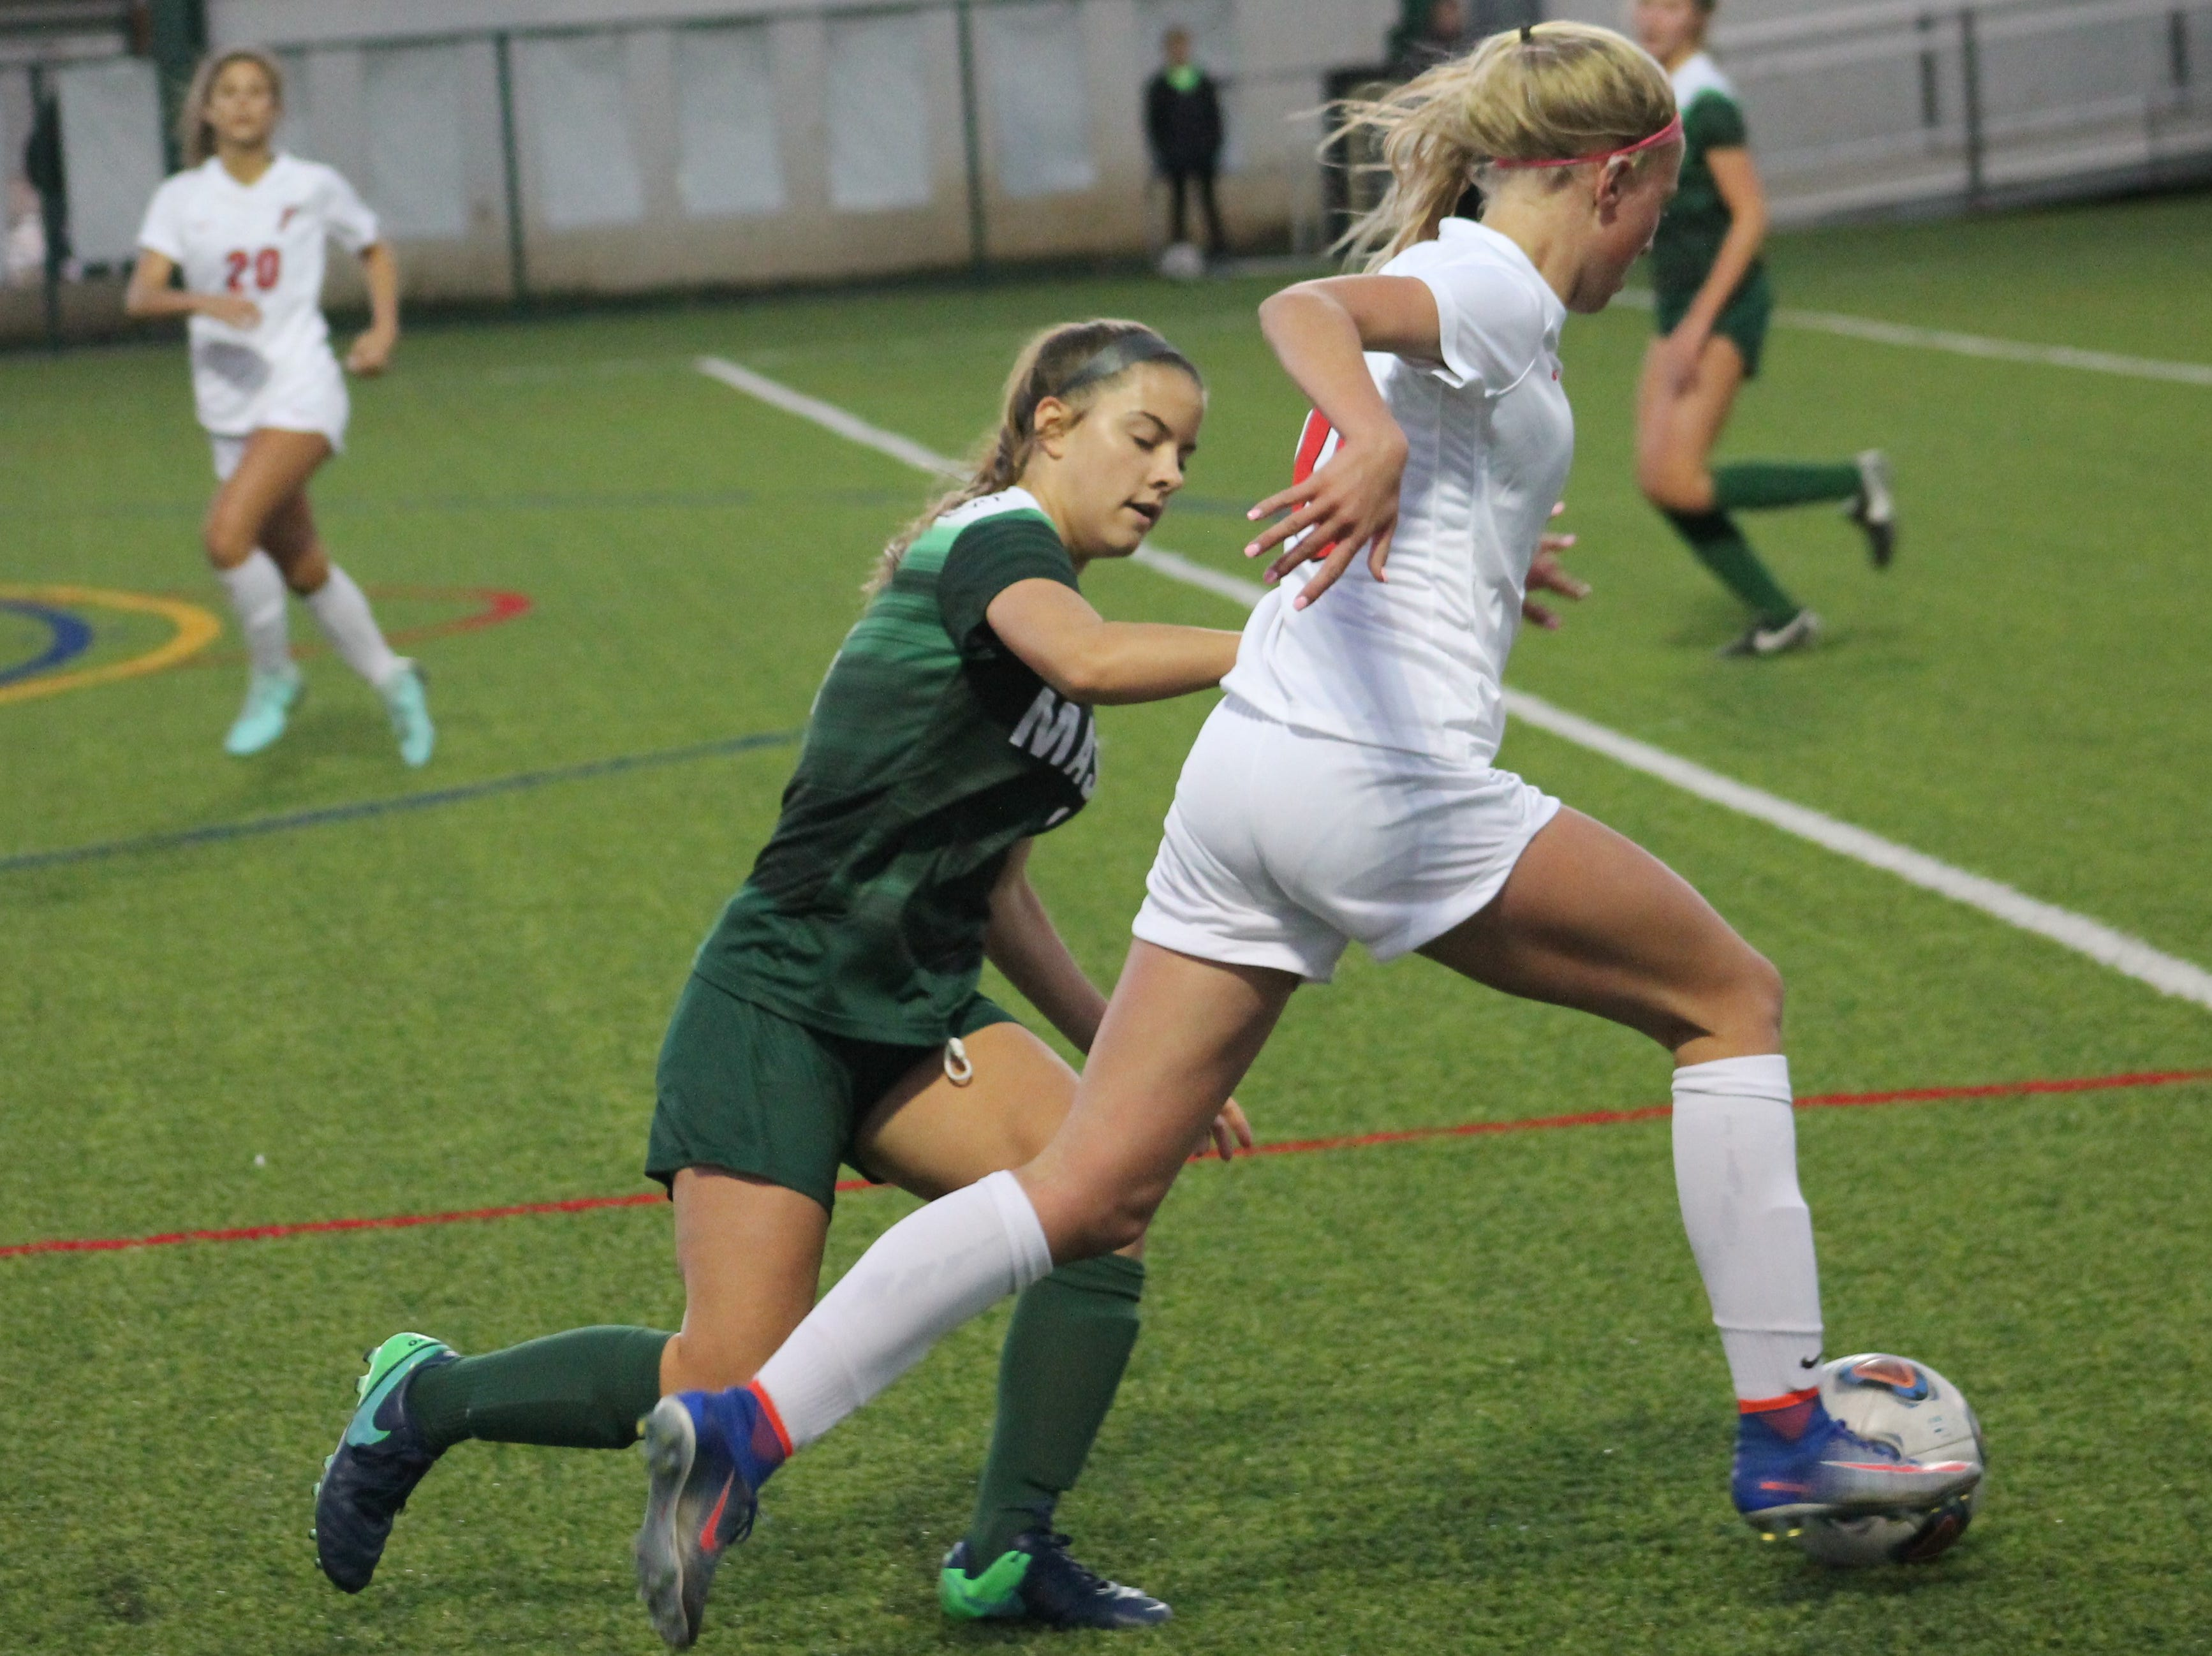 Mason's Natalie Adkins tries to chase down Fairfield junior Shelby O'Leary